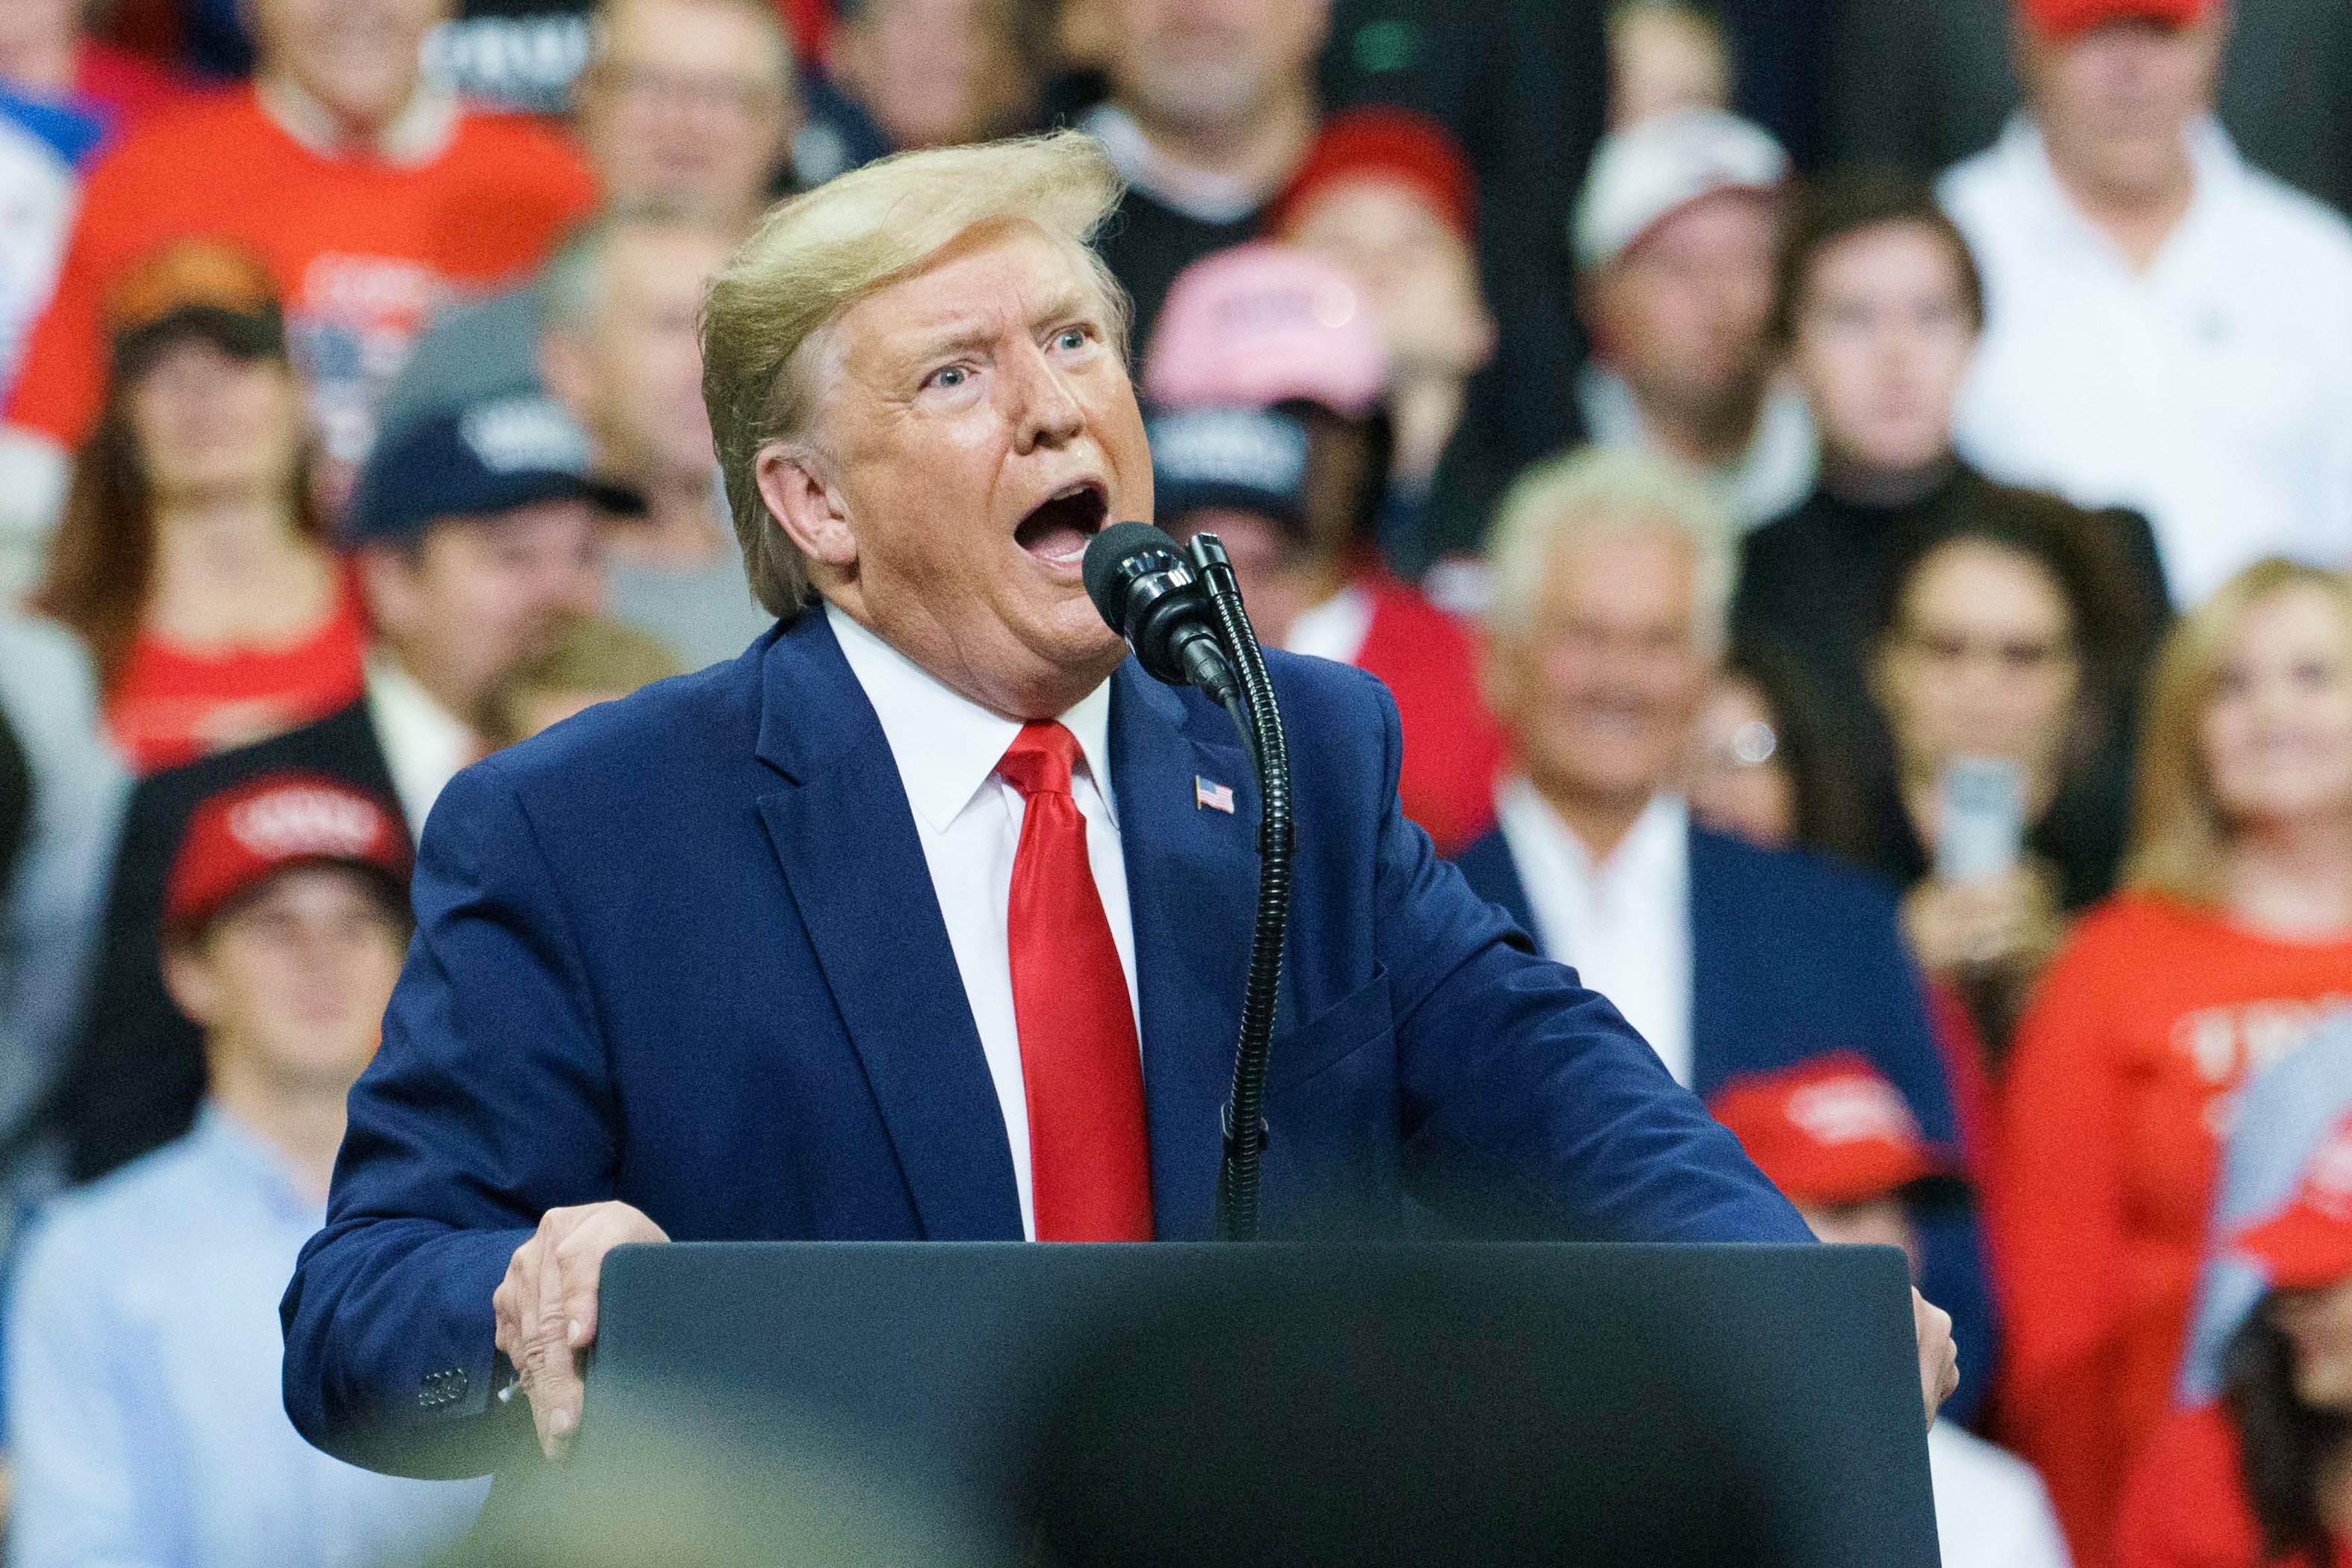 U.S. President Donald Trump speaks during a rally in Minneapolis, Minnesota on Oct. 10, 2019.